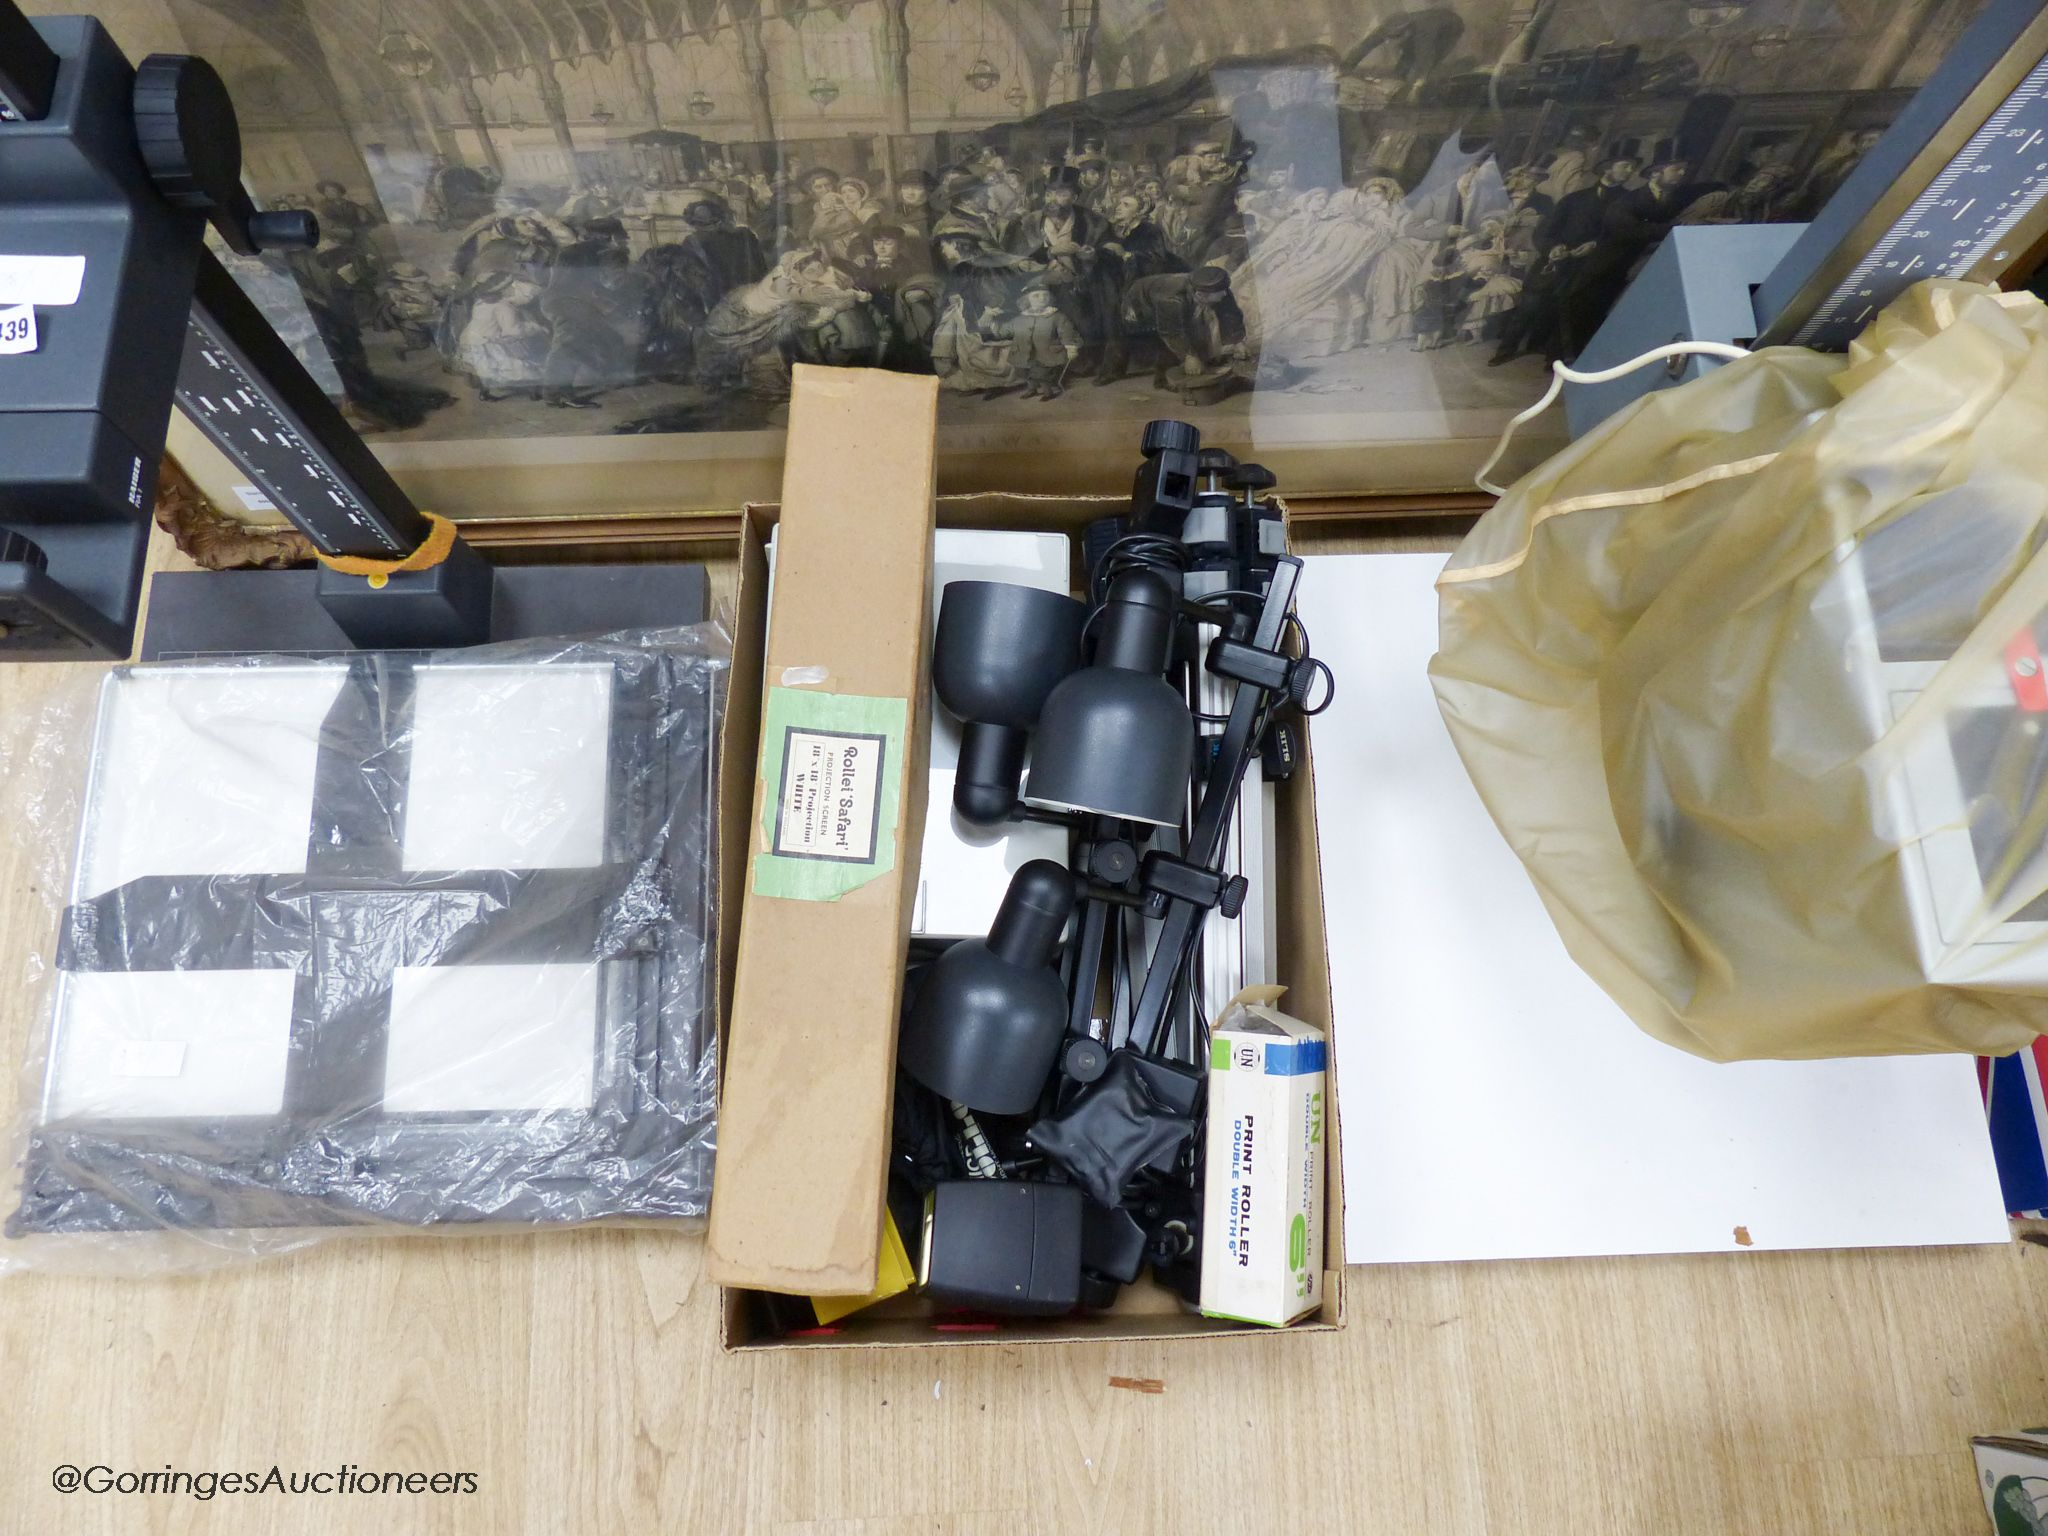 A collection of 20th century photographic accessories to include a Durst M800 enlarger and base, a - Image 2 of 2